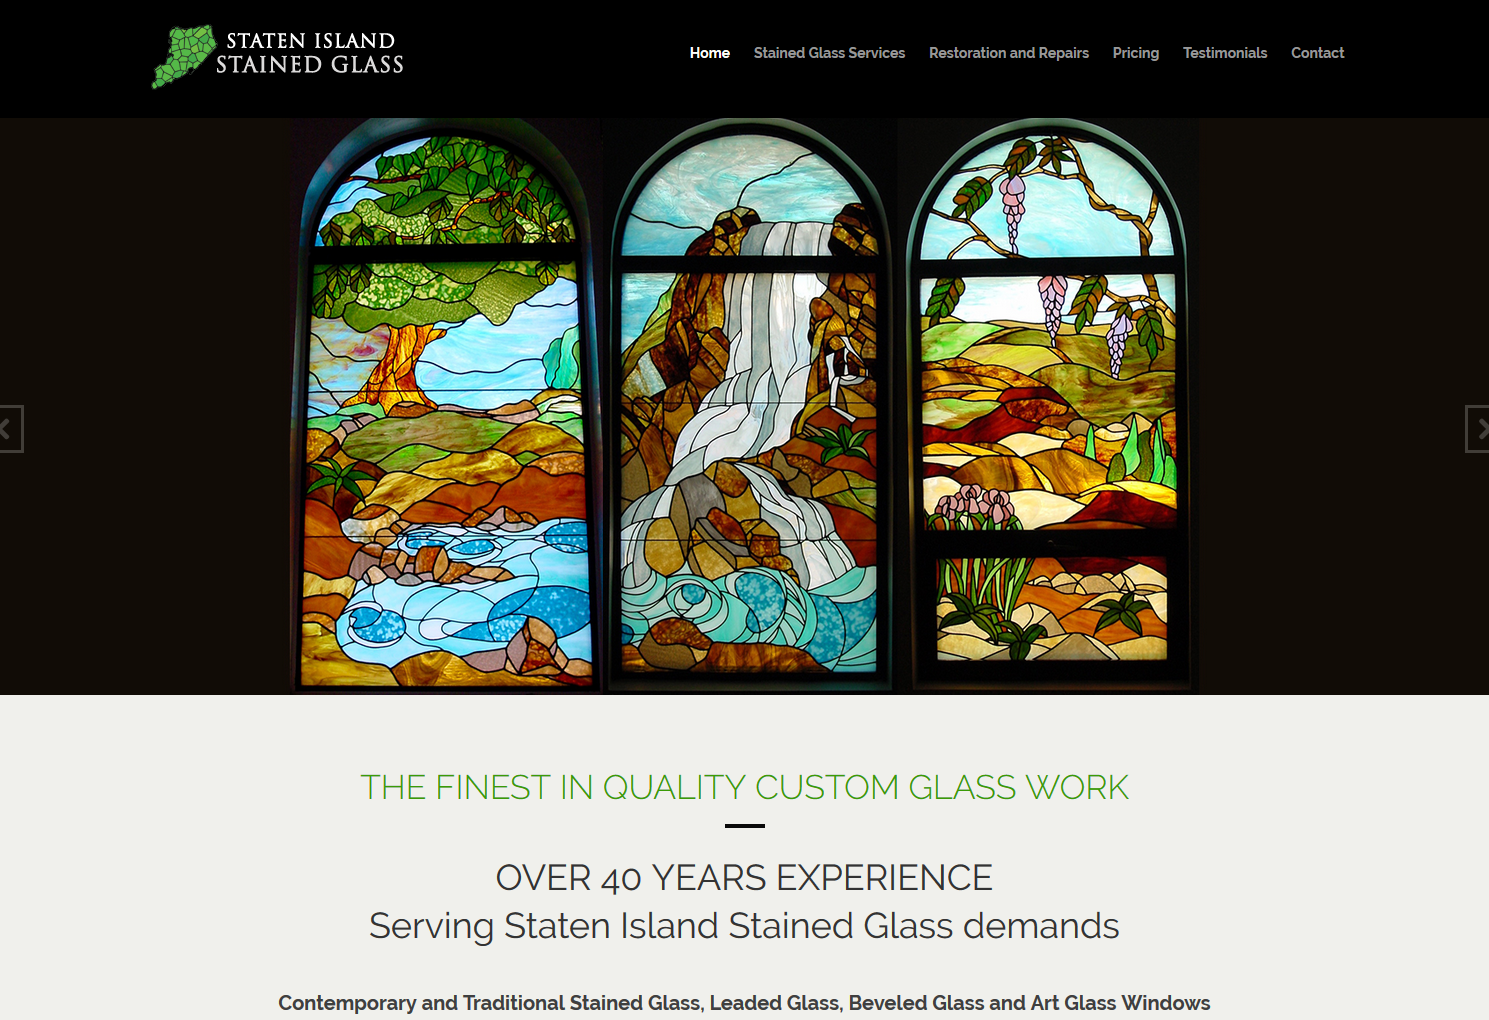 Staten Island Stained Glass